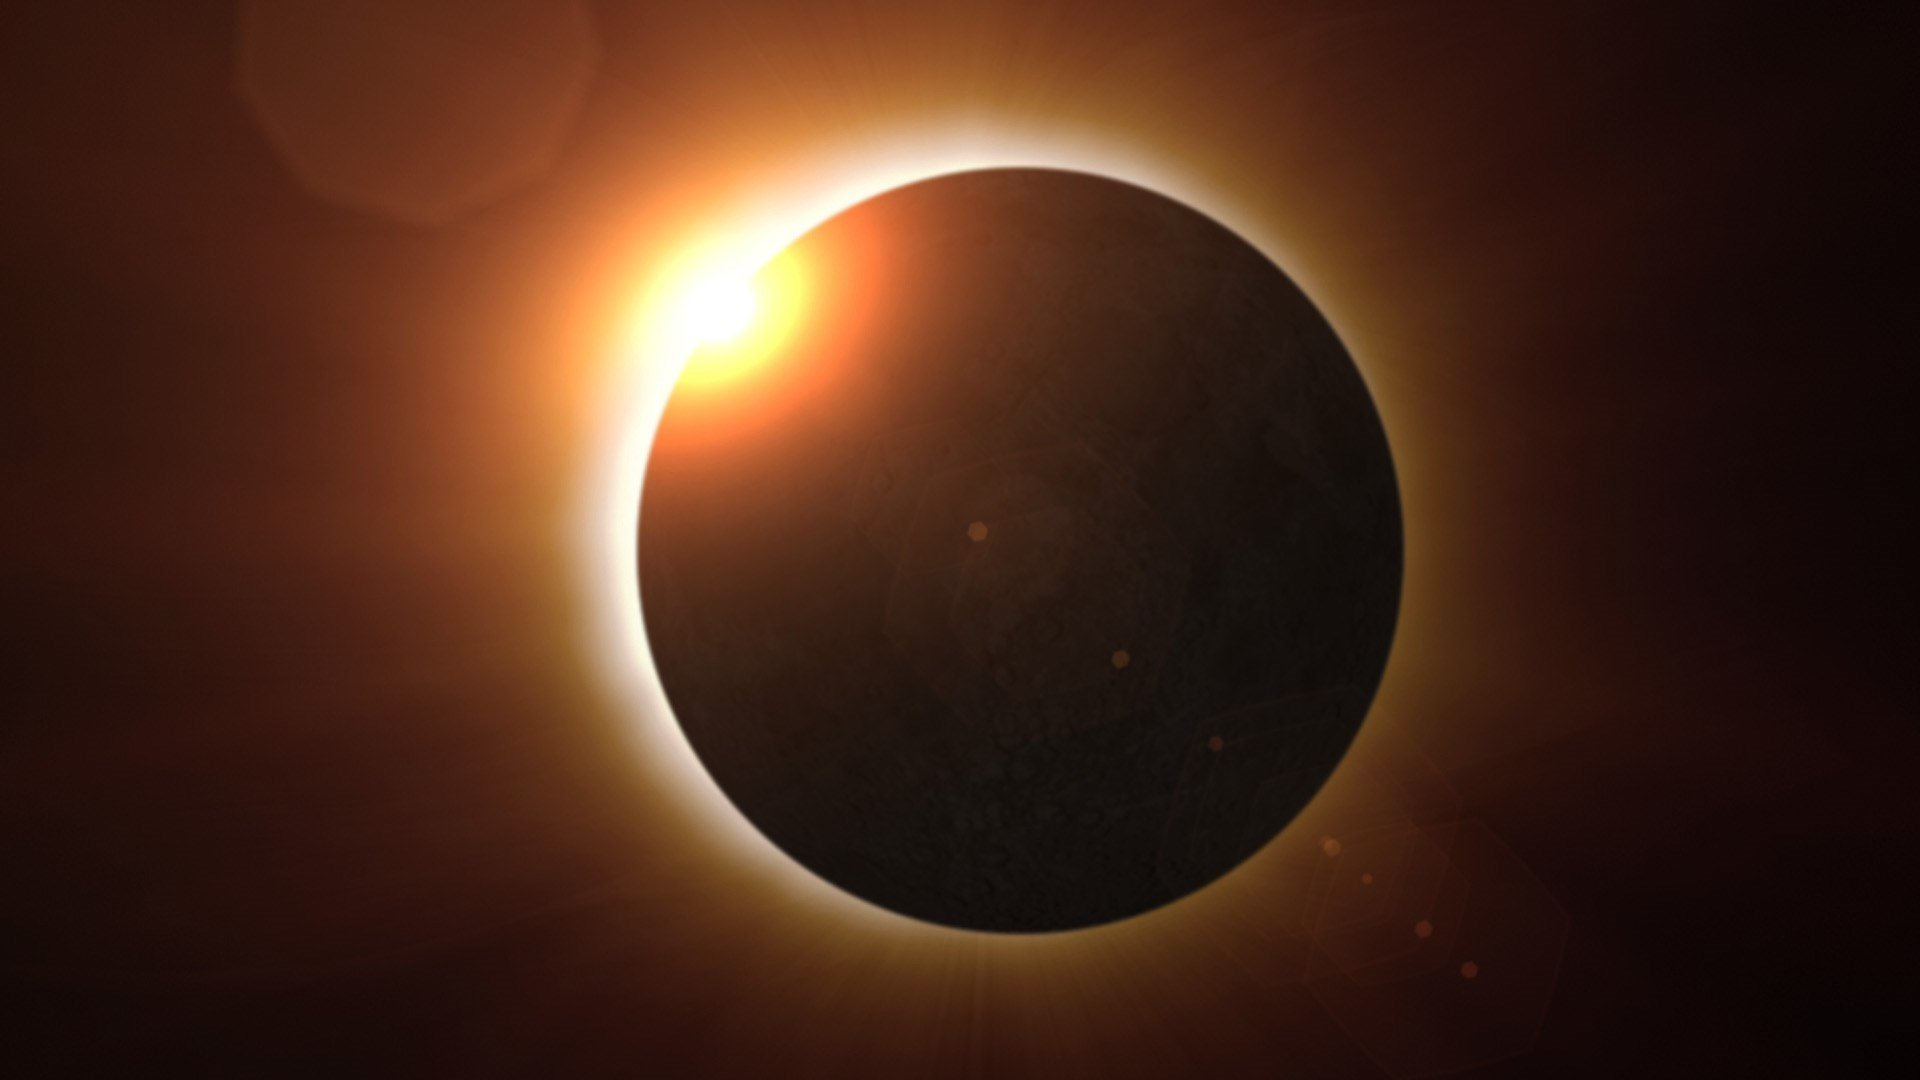 Nashville is throwing a party for the solar eclipse